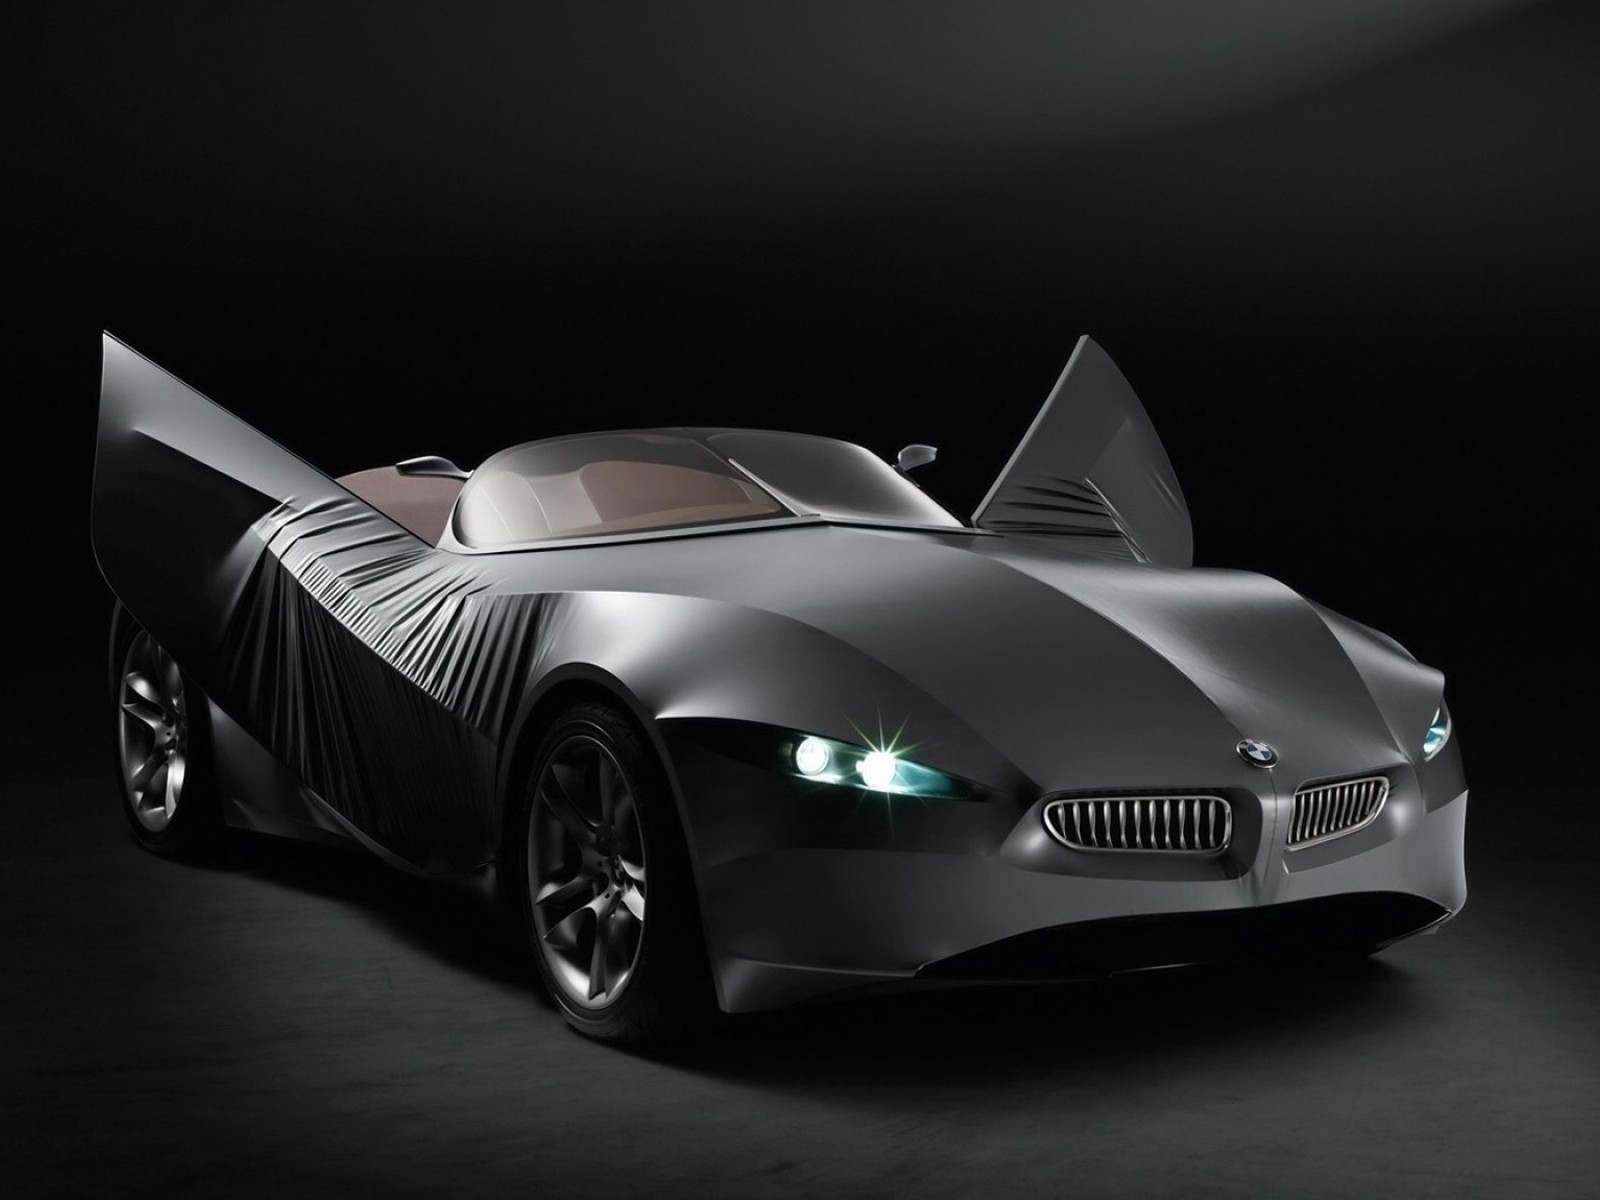 free cars hd wallpapers bmw gina concept cars hd wallpapers. Black Bedroom Furniture Sets. Home Design Ideas